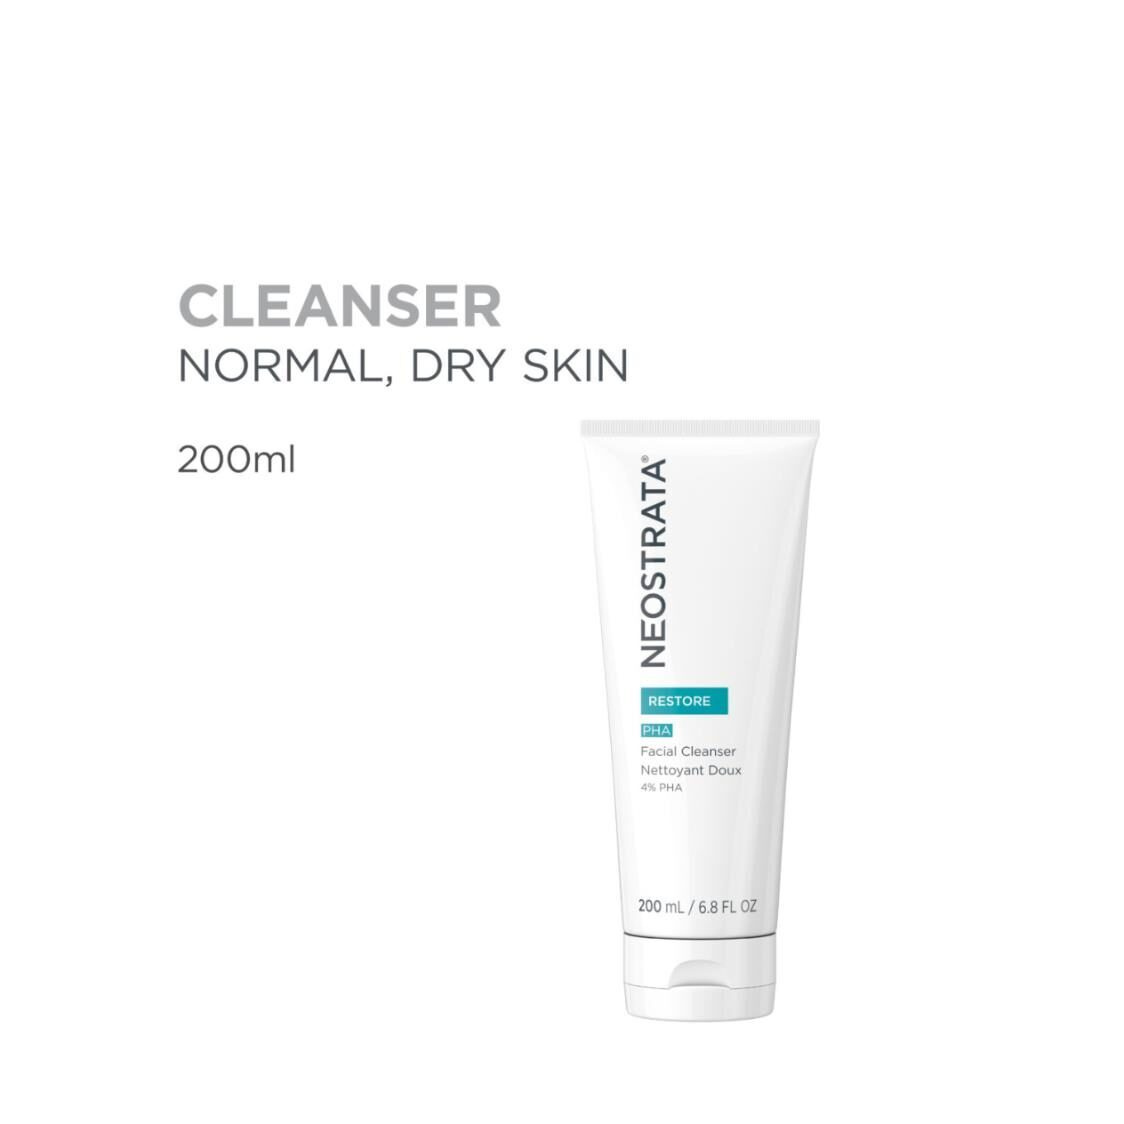 Facial Cleanser 200ml